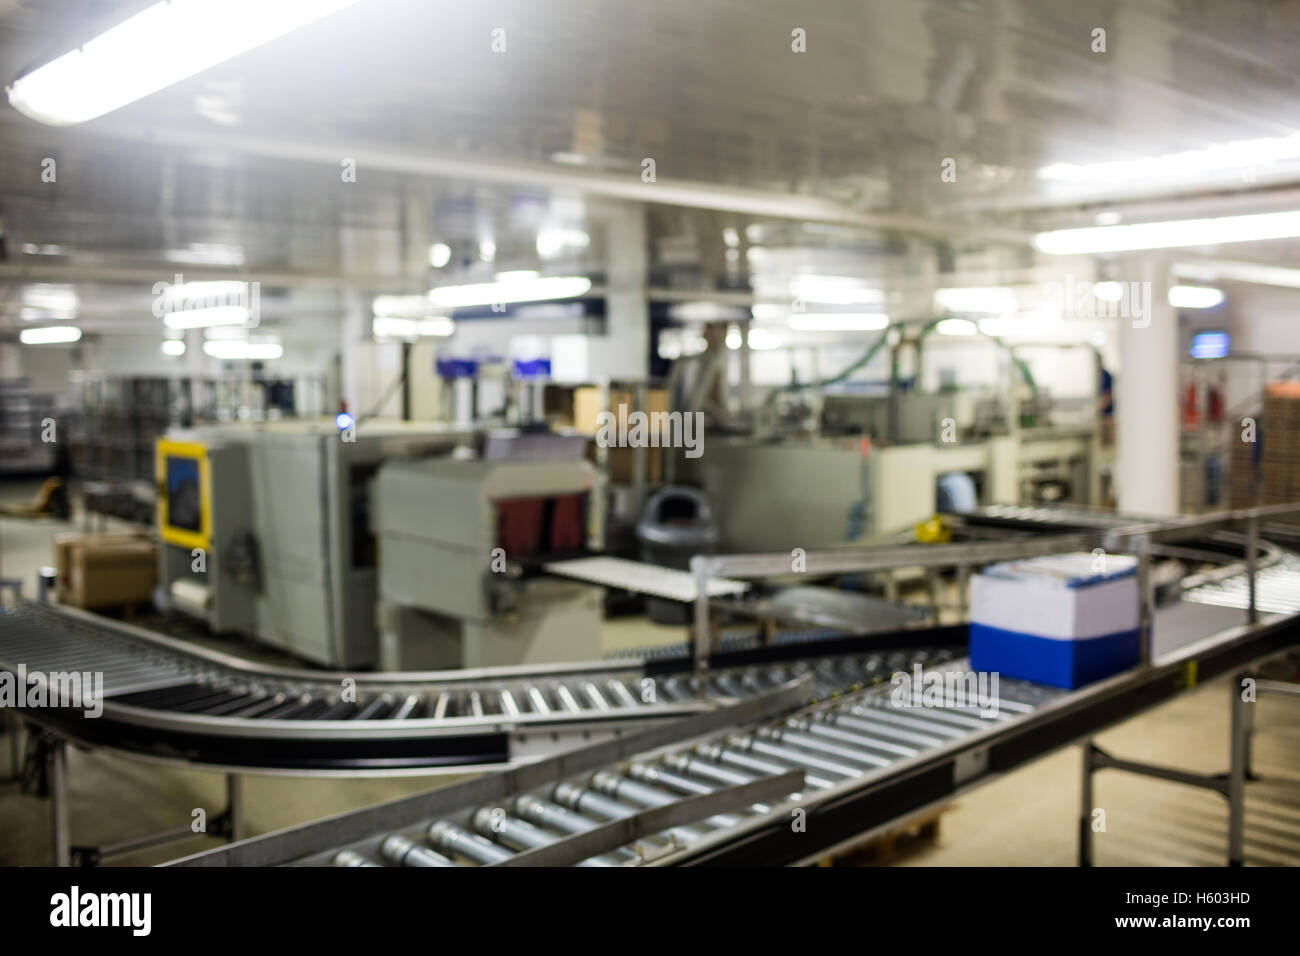 Box moving on production line - Stock Image